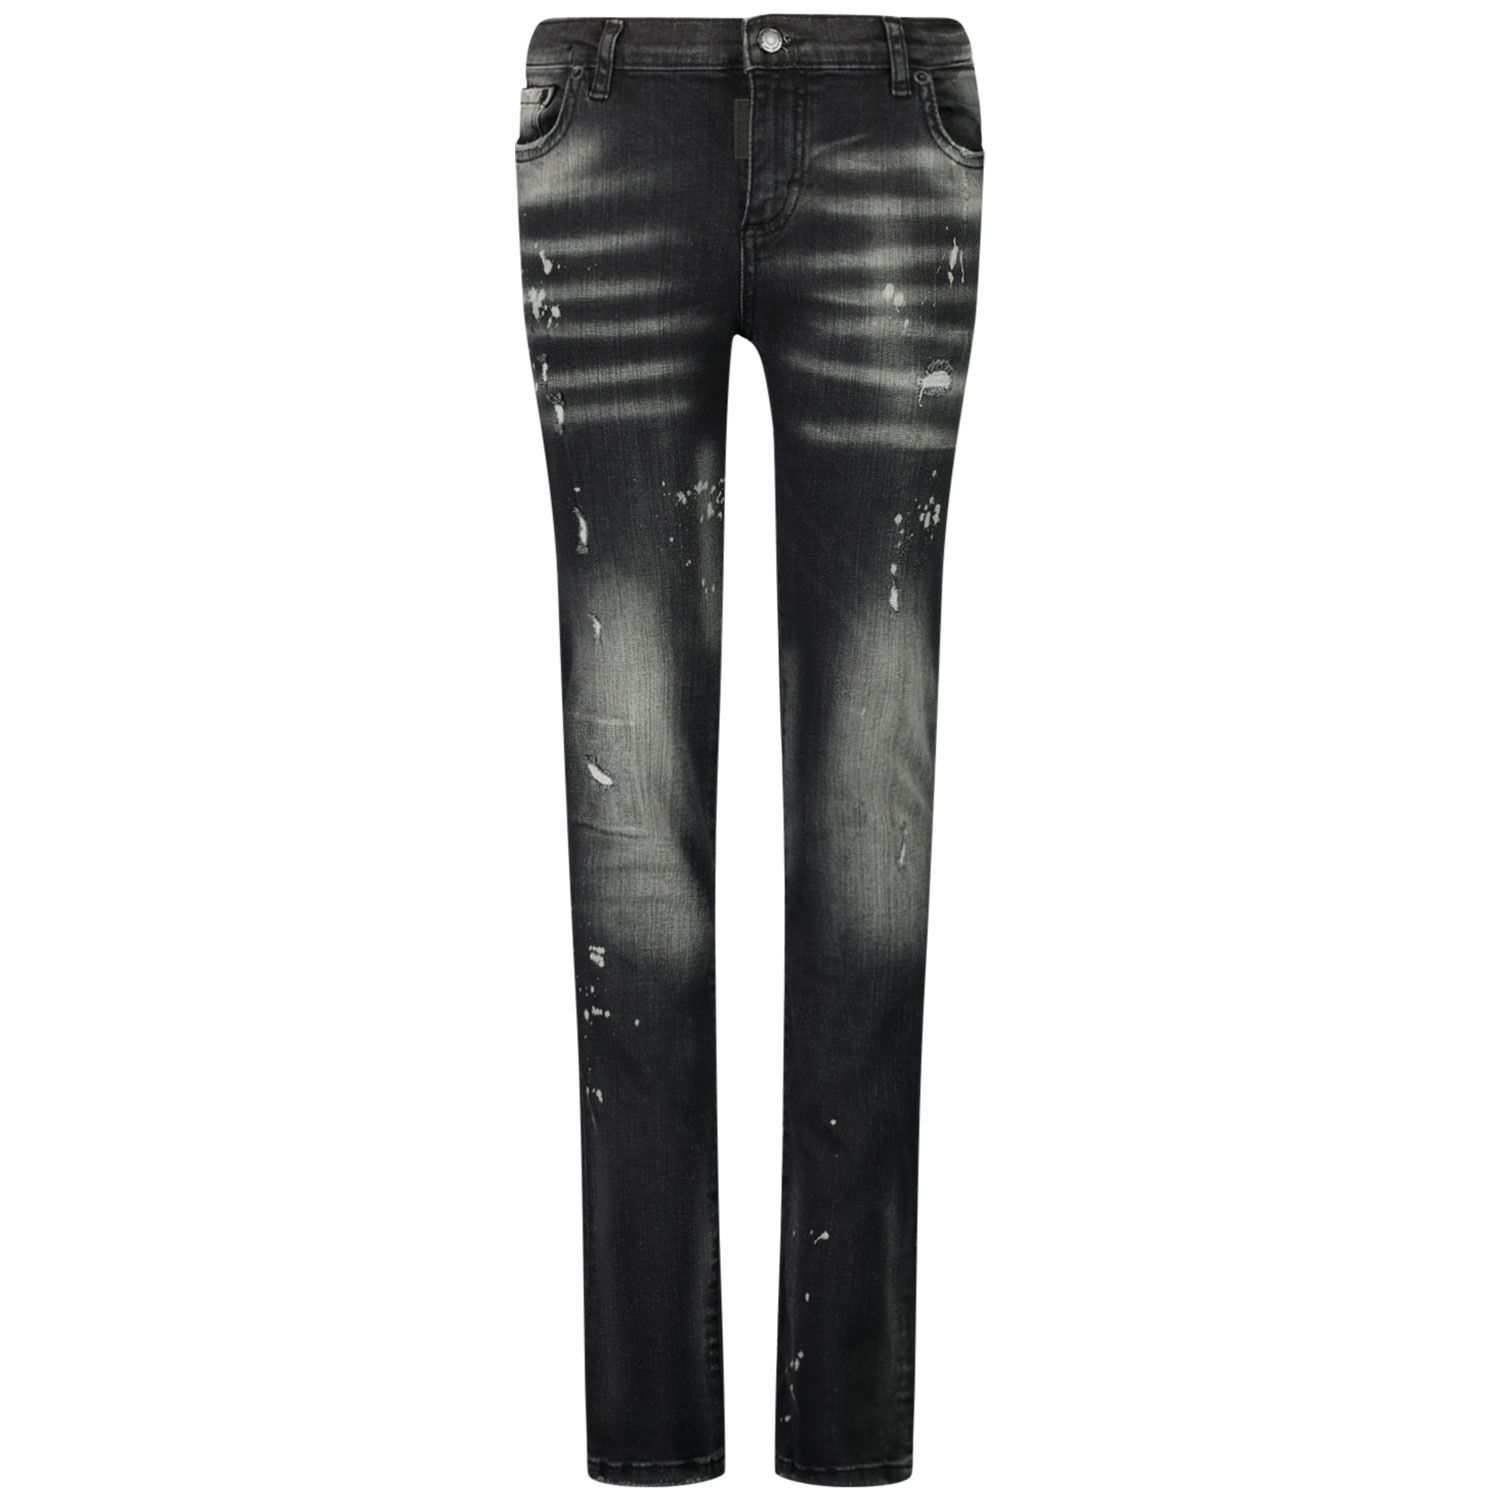 Picture of My Brand 3Y20003B0006 kids jeans grey